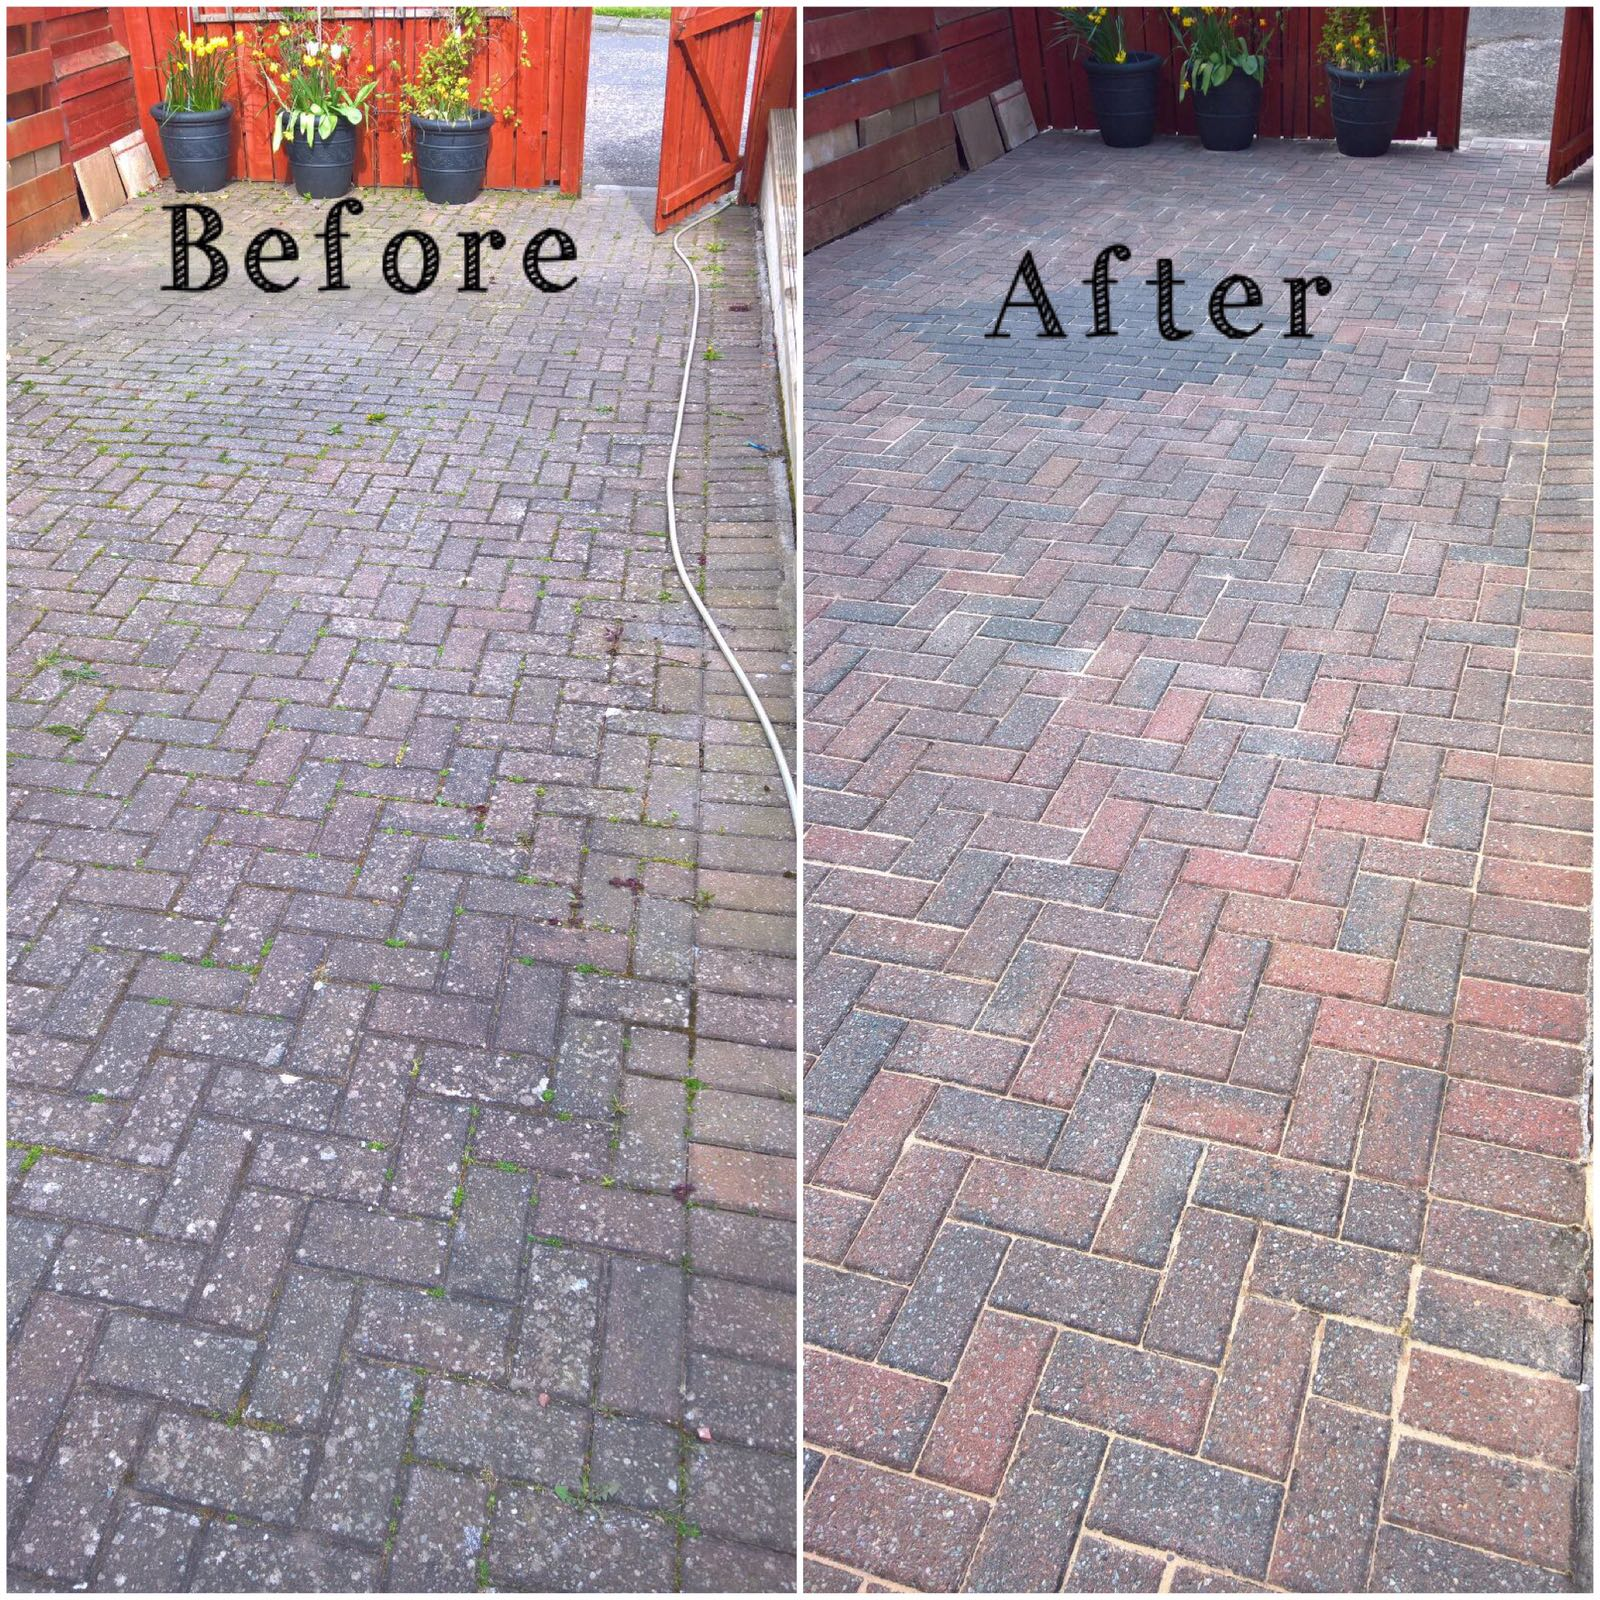 Driveway cleaning and pressure washing in edinburgh